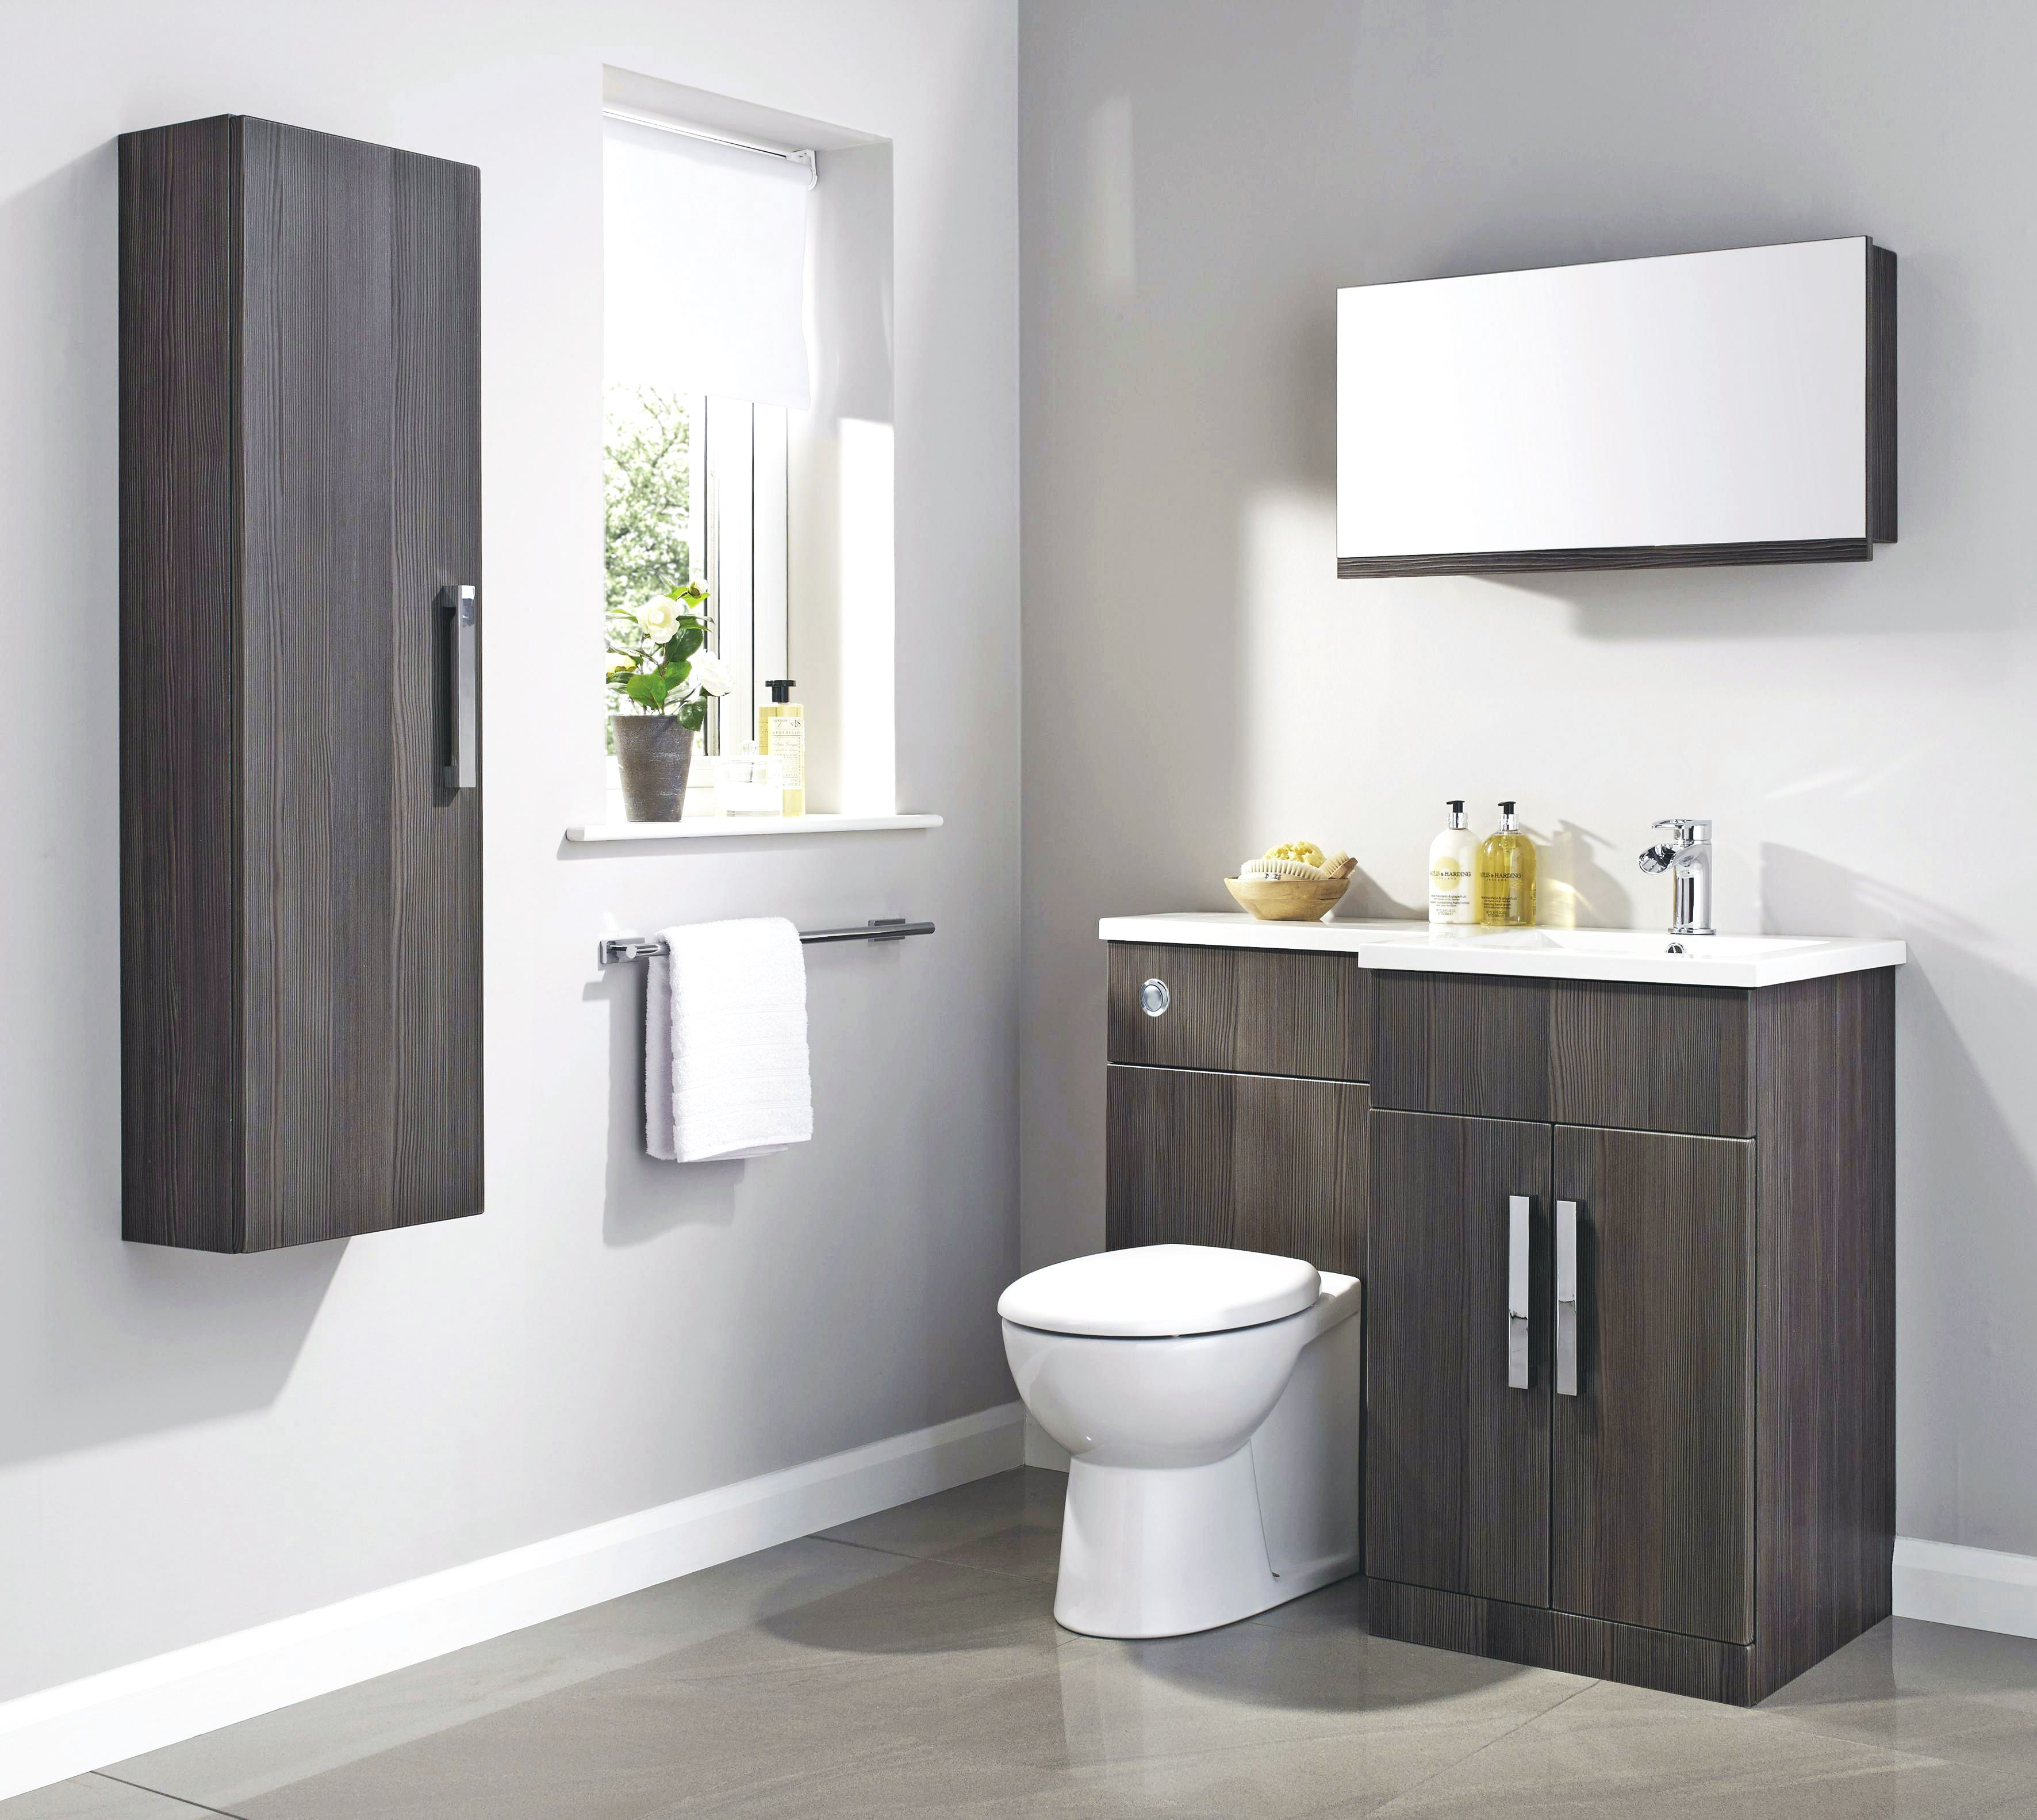 bathroom units ardesio freestanding bathroom furniture MCAVQBI